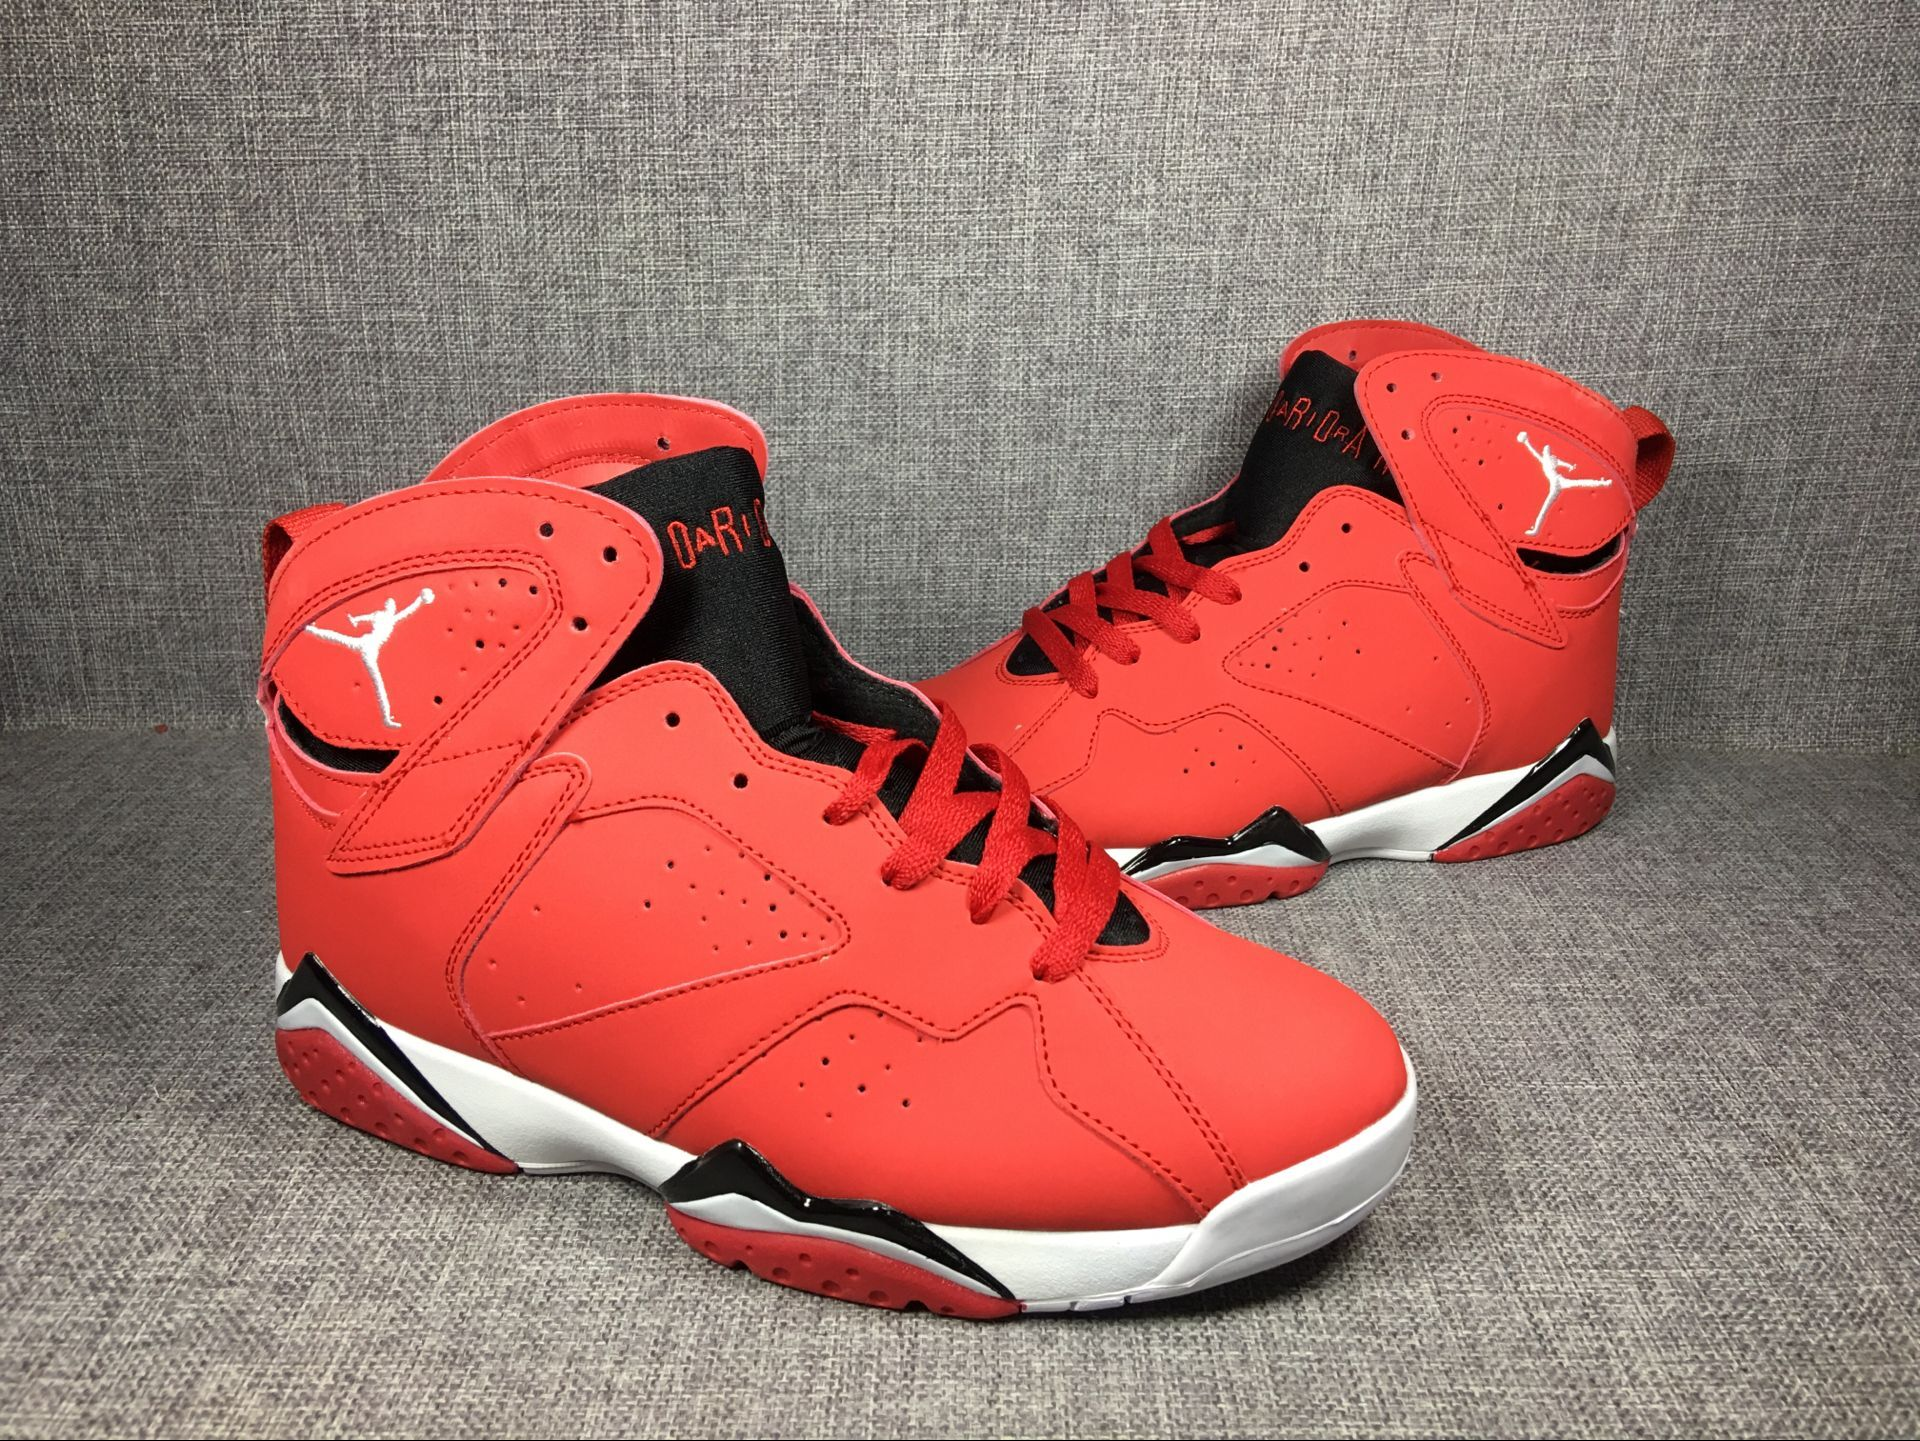 pretty nice 76fbb fc0ba 2017 Men Air Jordan 7 Red Black White Shoes